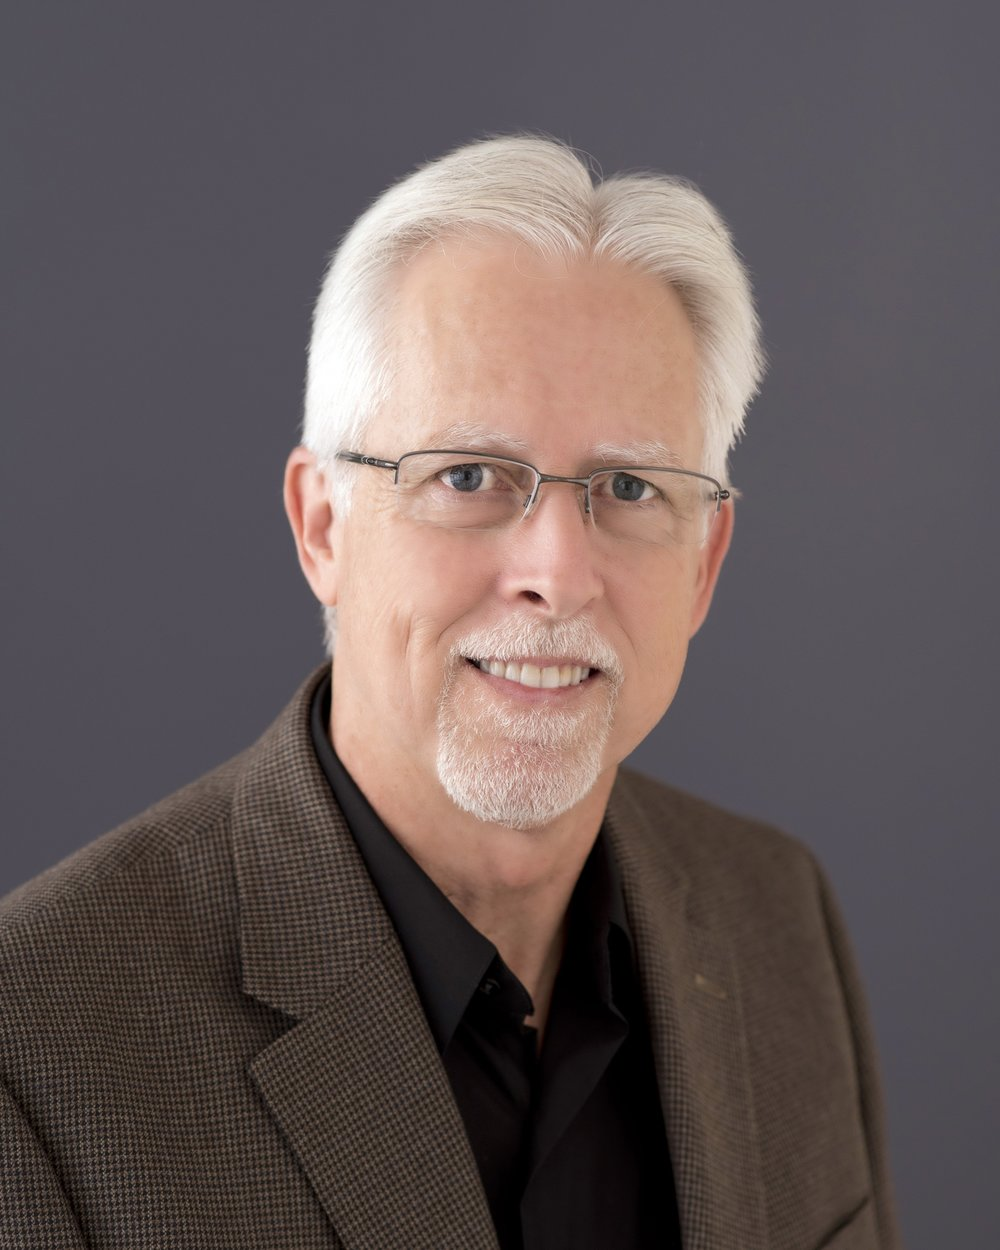 Tom Devine - The Architect is In: Plan Reviews Tuesday, February 19 | 3:30 - 4:30 PMLocation: LVCC - Design Studio - LVCC - South 224